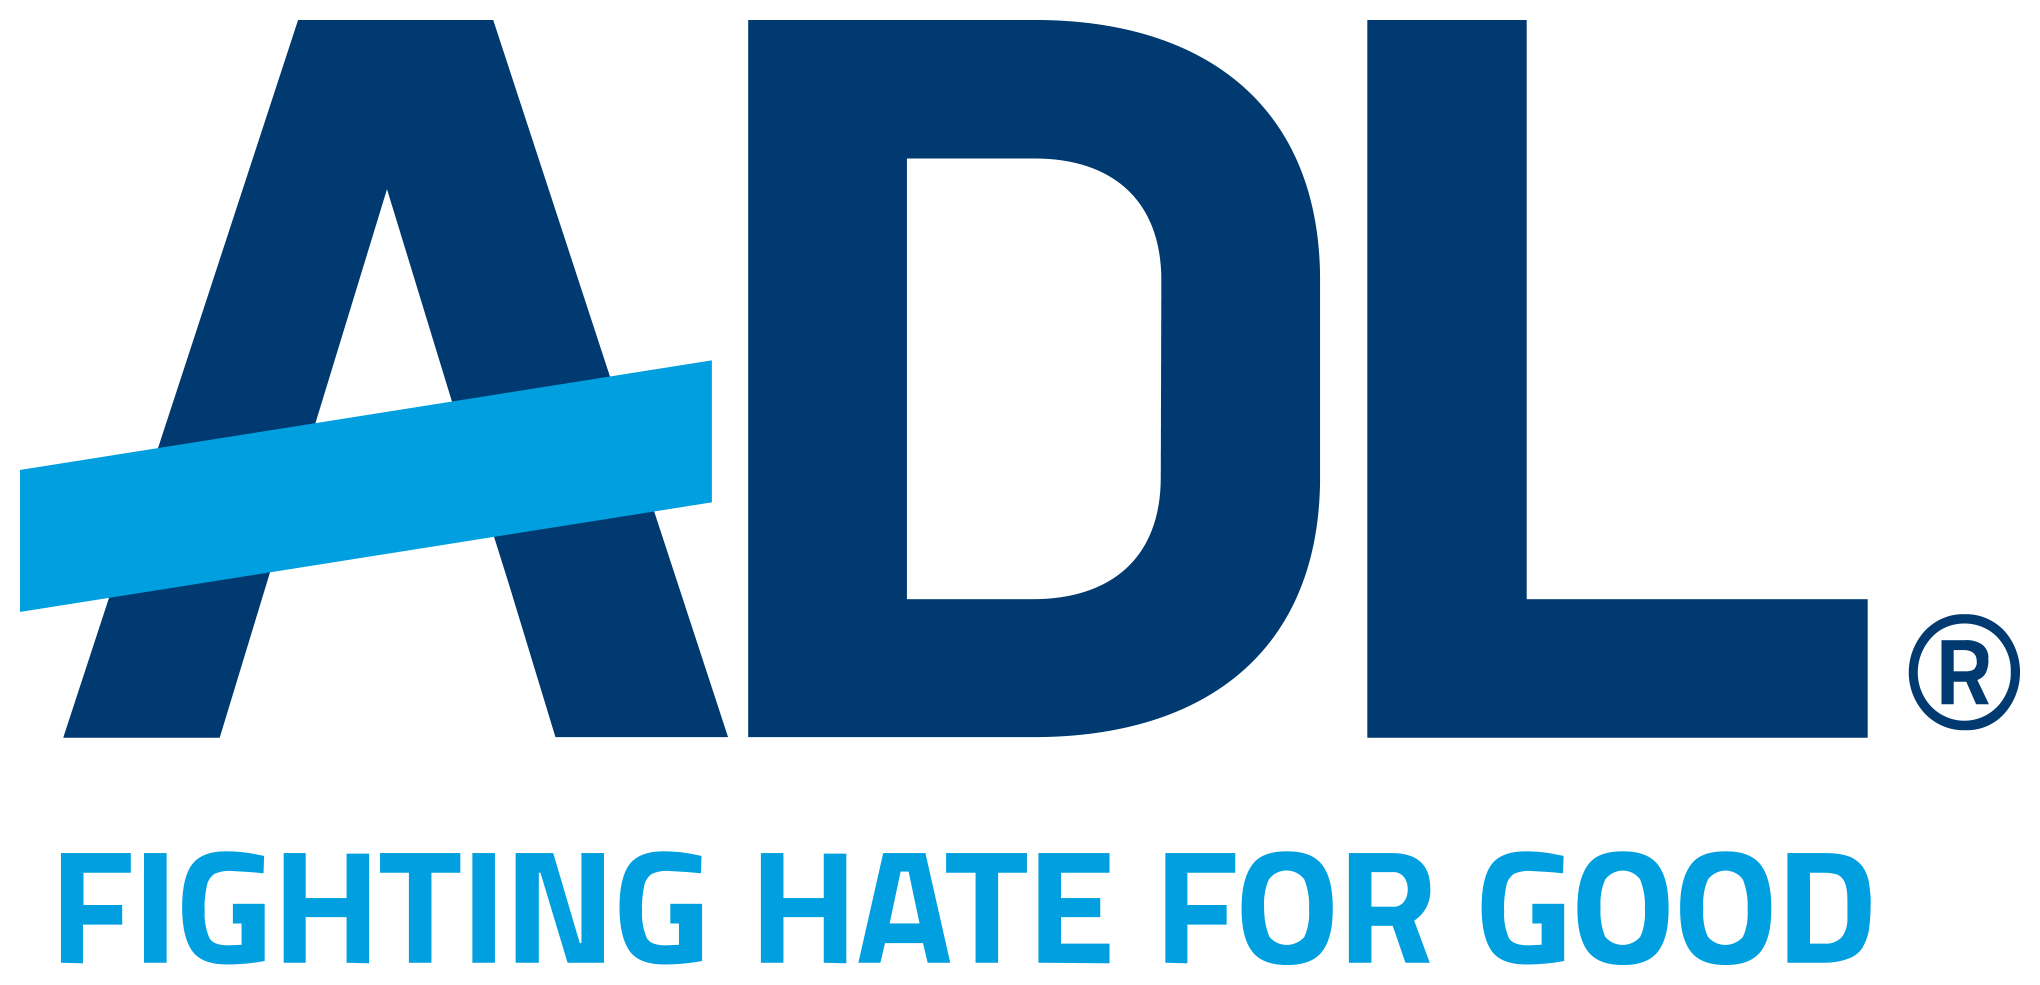 ADL, NAACP, Sleeping Giants, Common Sense, Free Press & Color of Change Call for Global Corporations to Pause Advertising on Facebook to Stop Hate Online